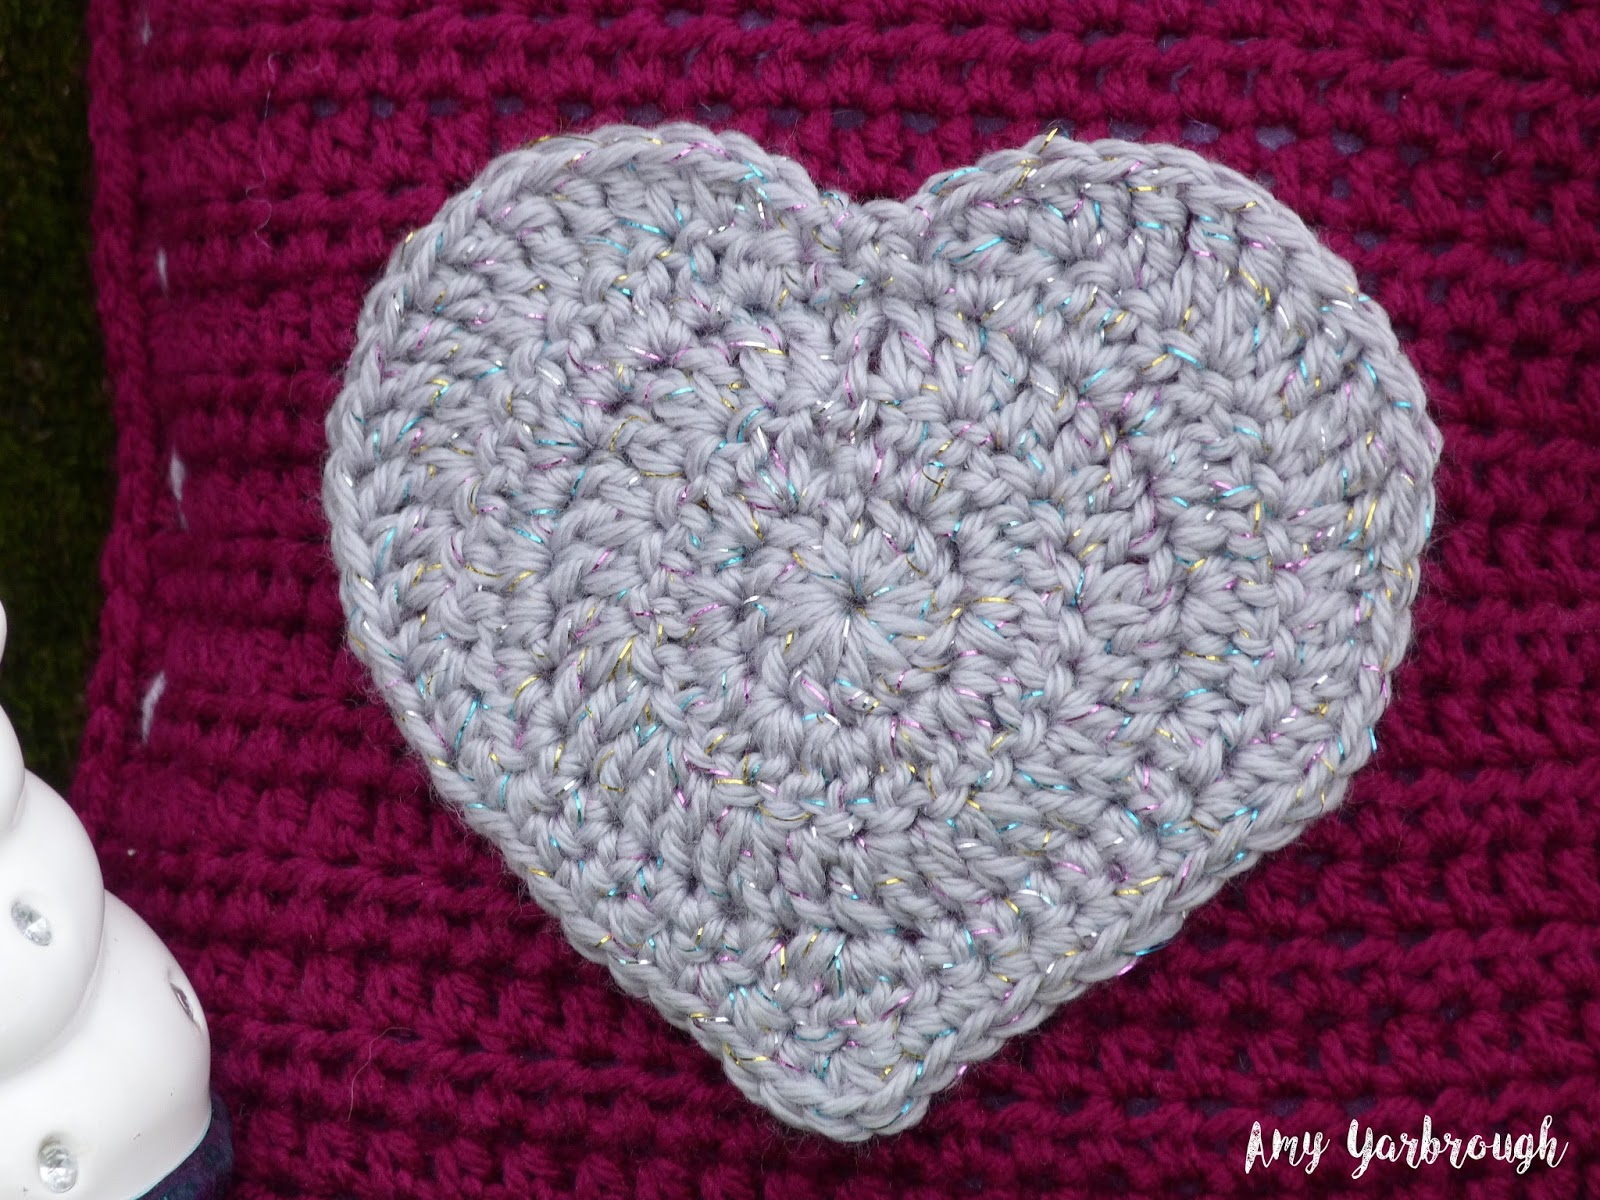 Glitzy heart mini pillow new crochet pattern ginger peachy heart applique round 1 with color b make an adjustable ring ch 3 counts as dc here and throughout 11 dc in ring sl st in beg ch 3 12 dc bankloansurffo Gallery